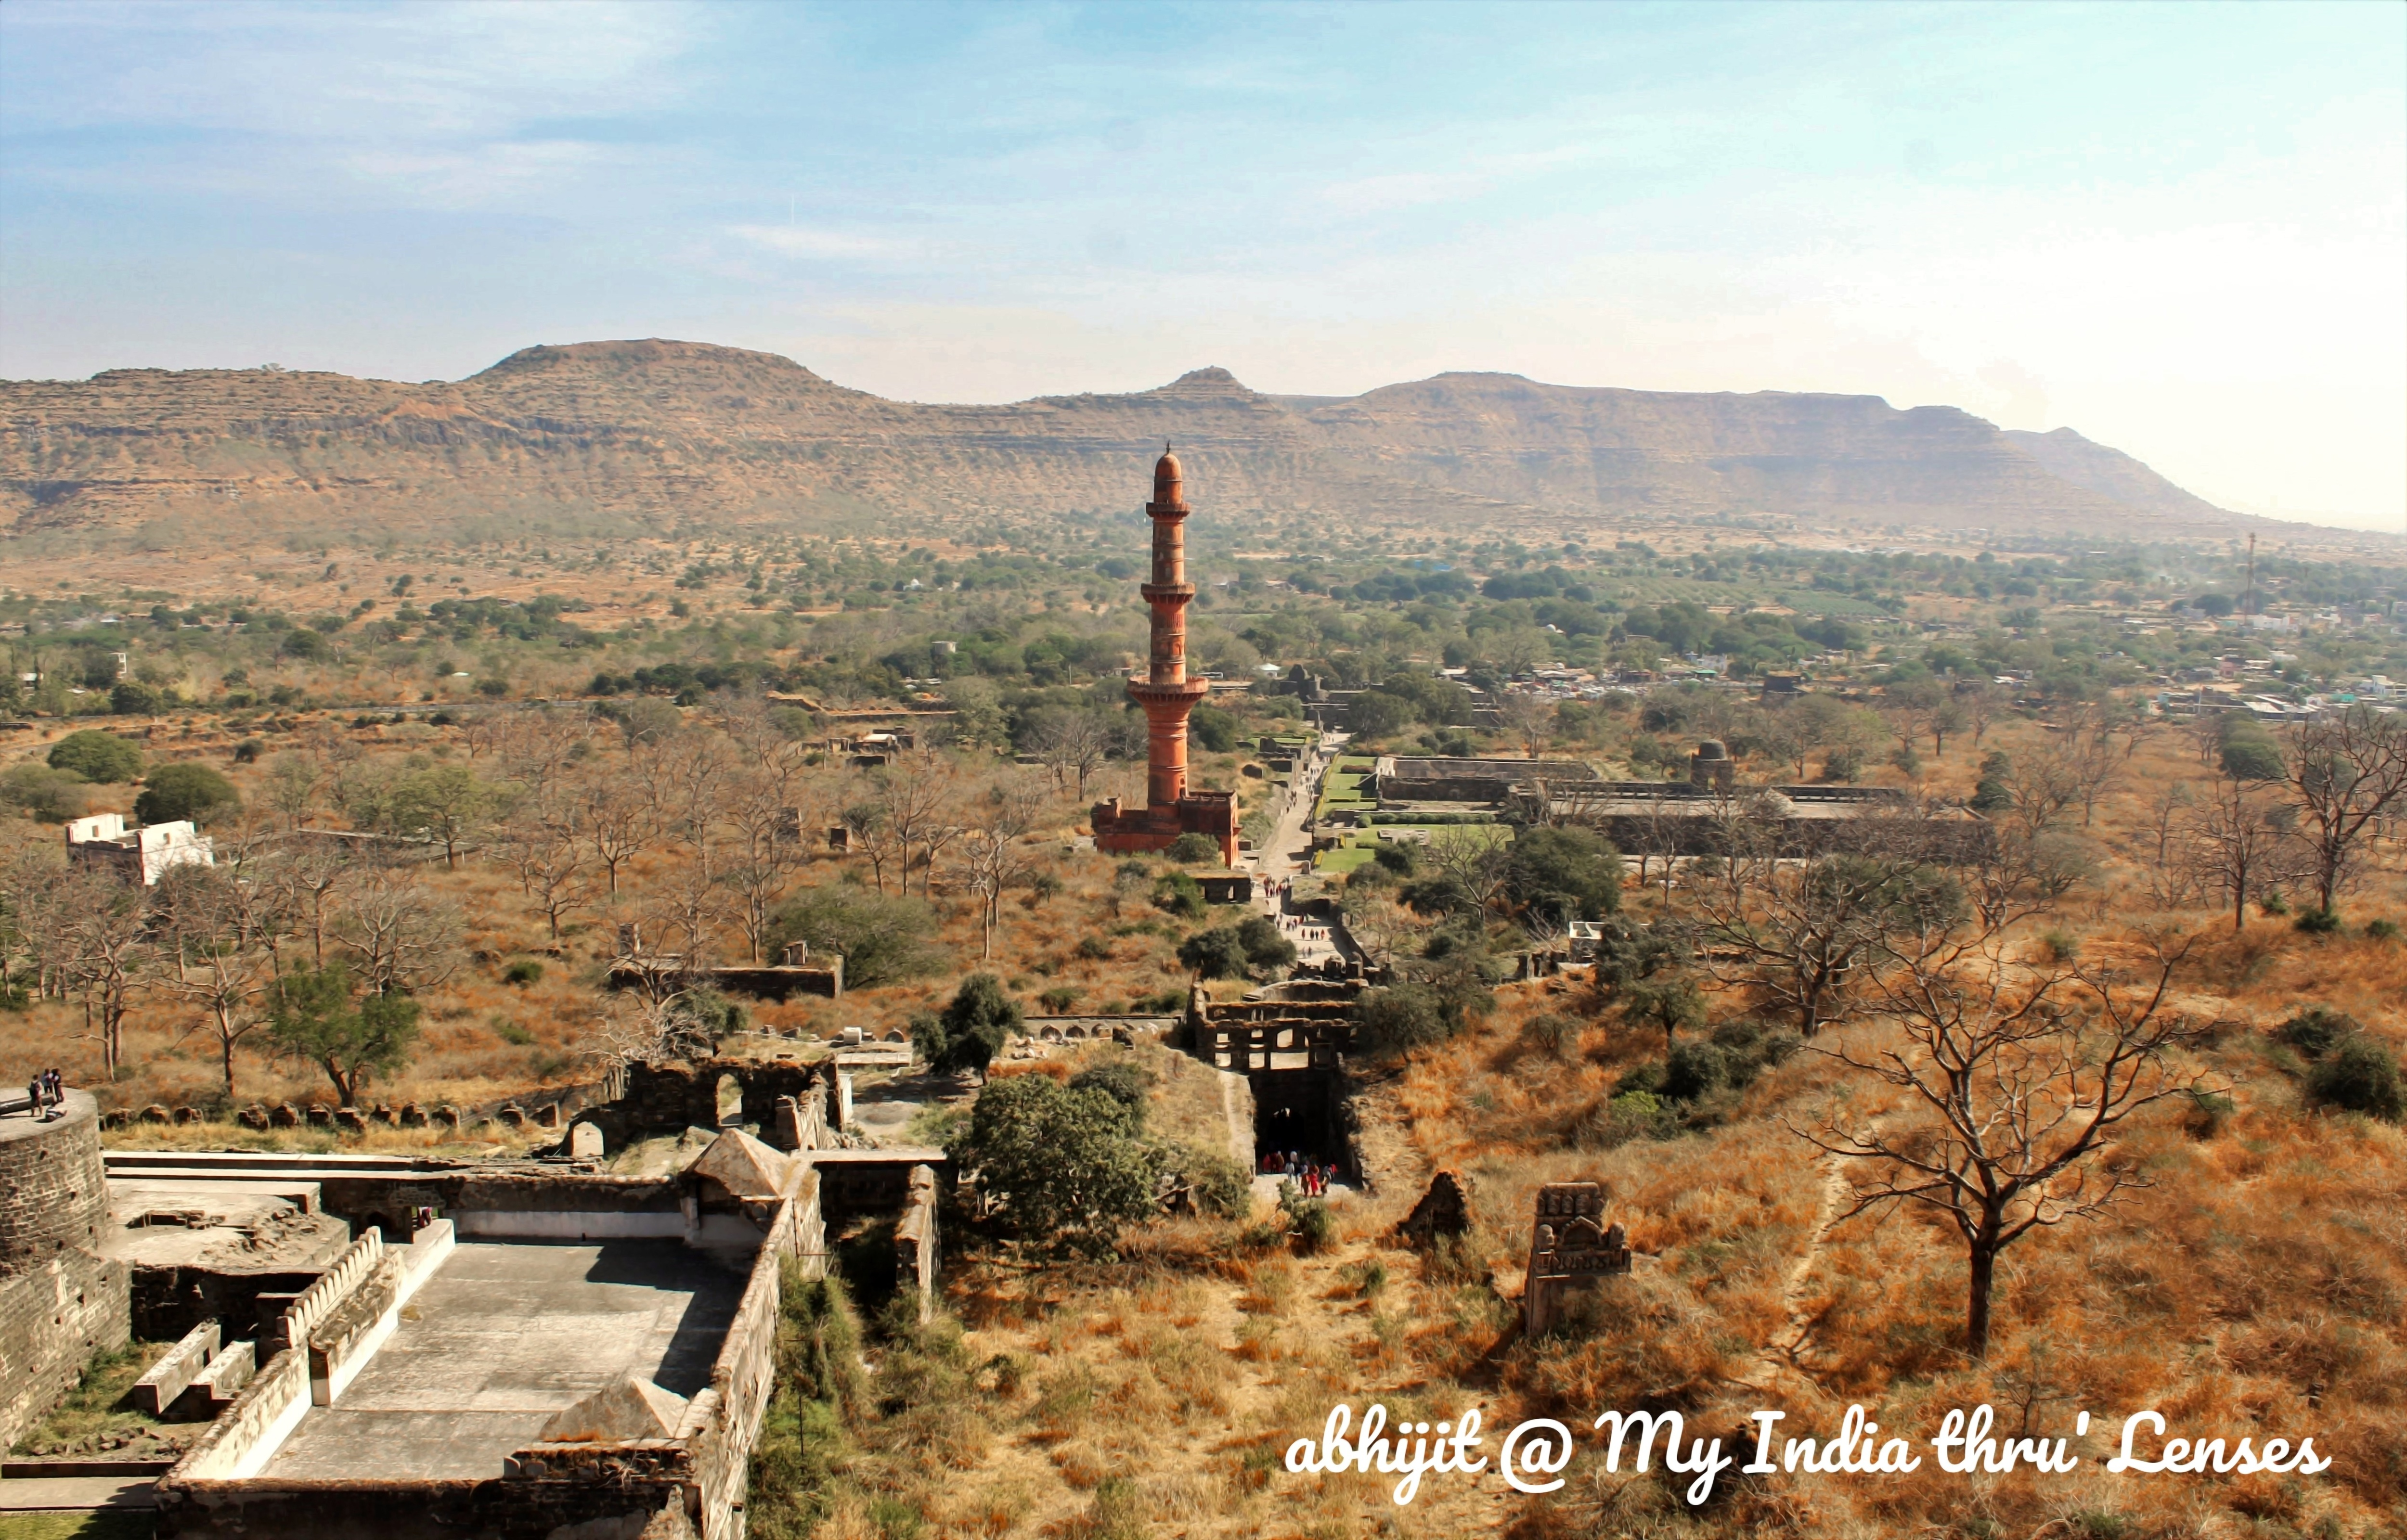 A view of the Chand Minar while we climb the steps towards the Summit